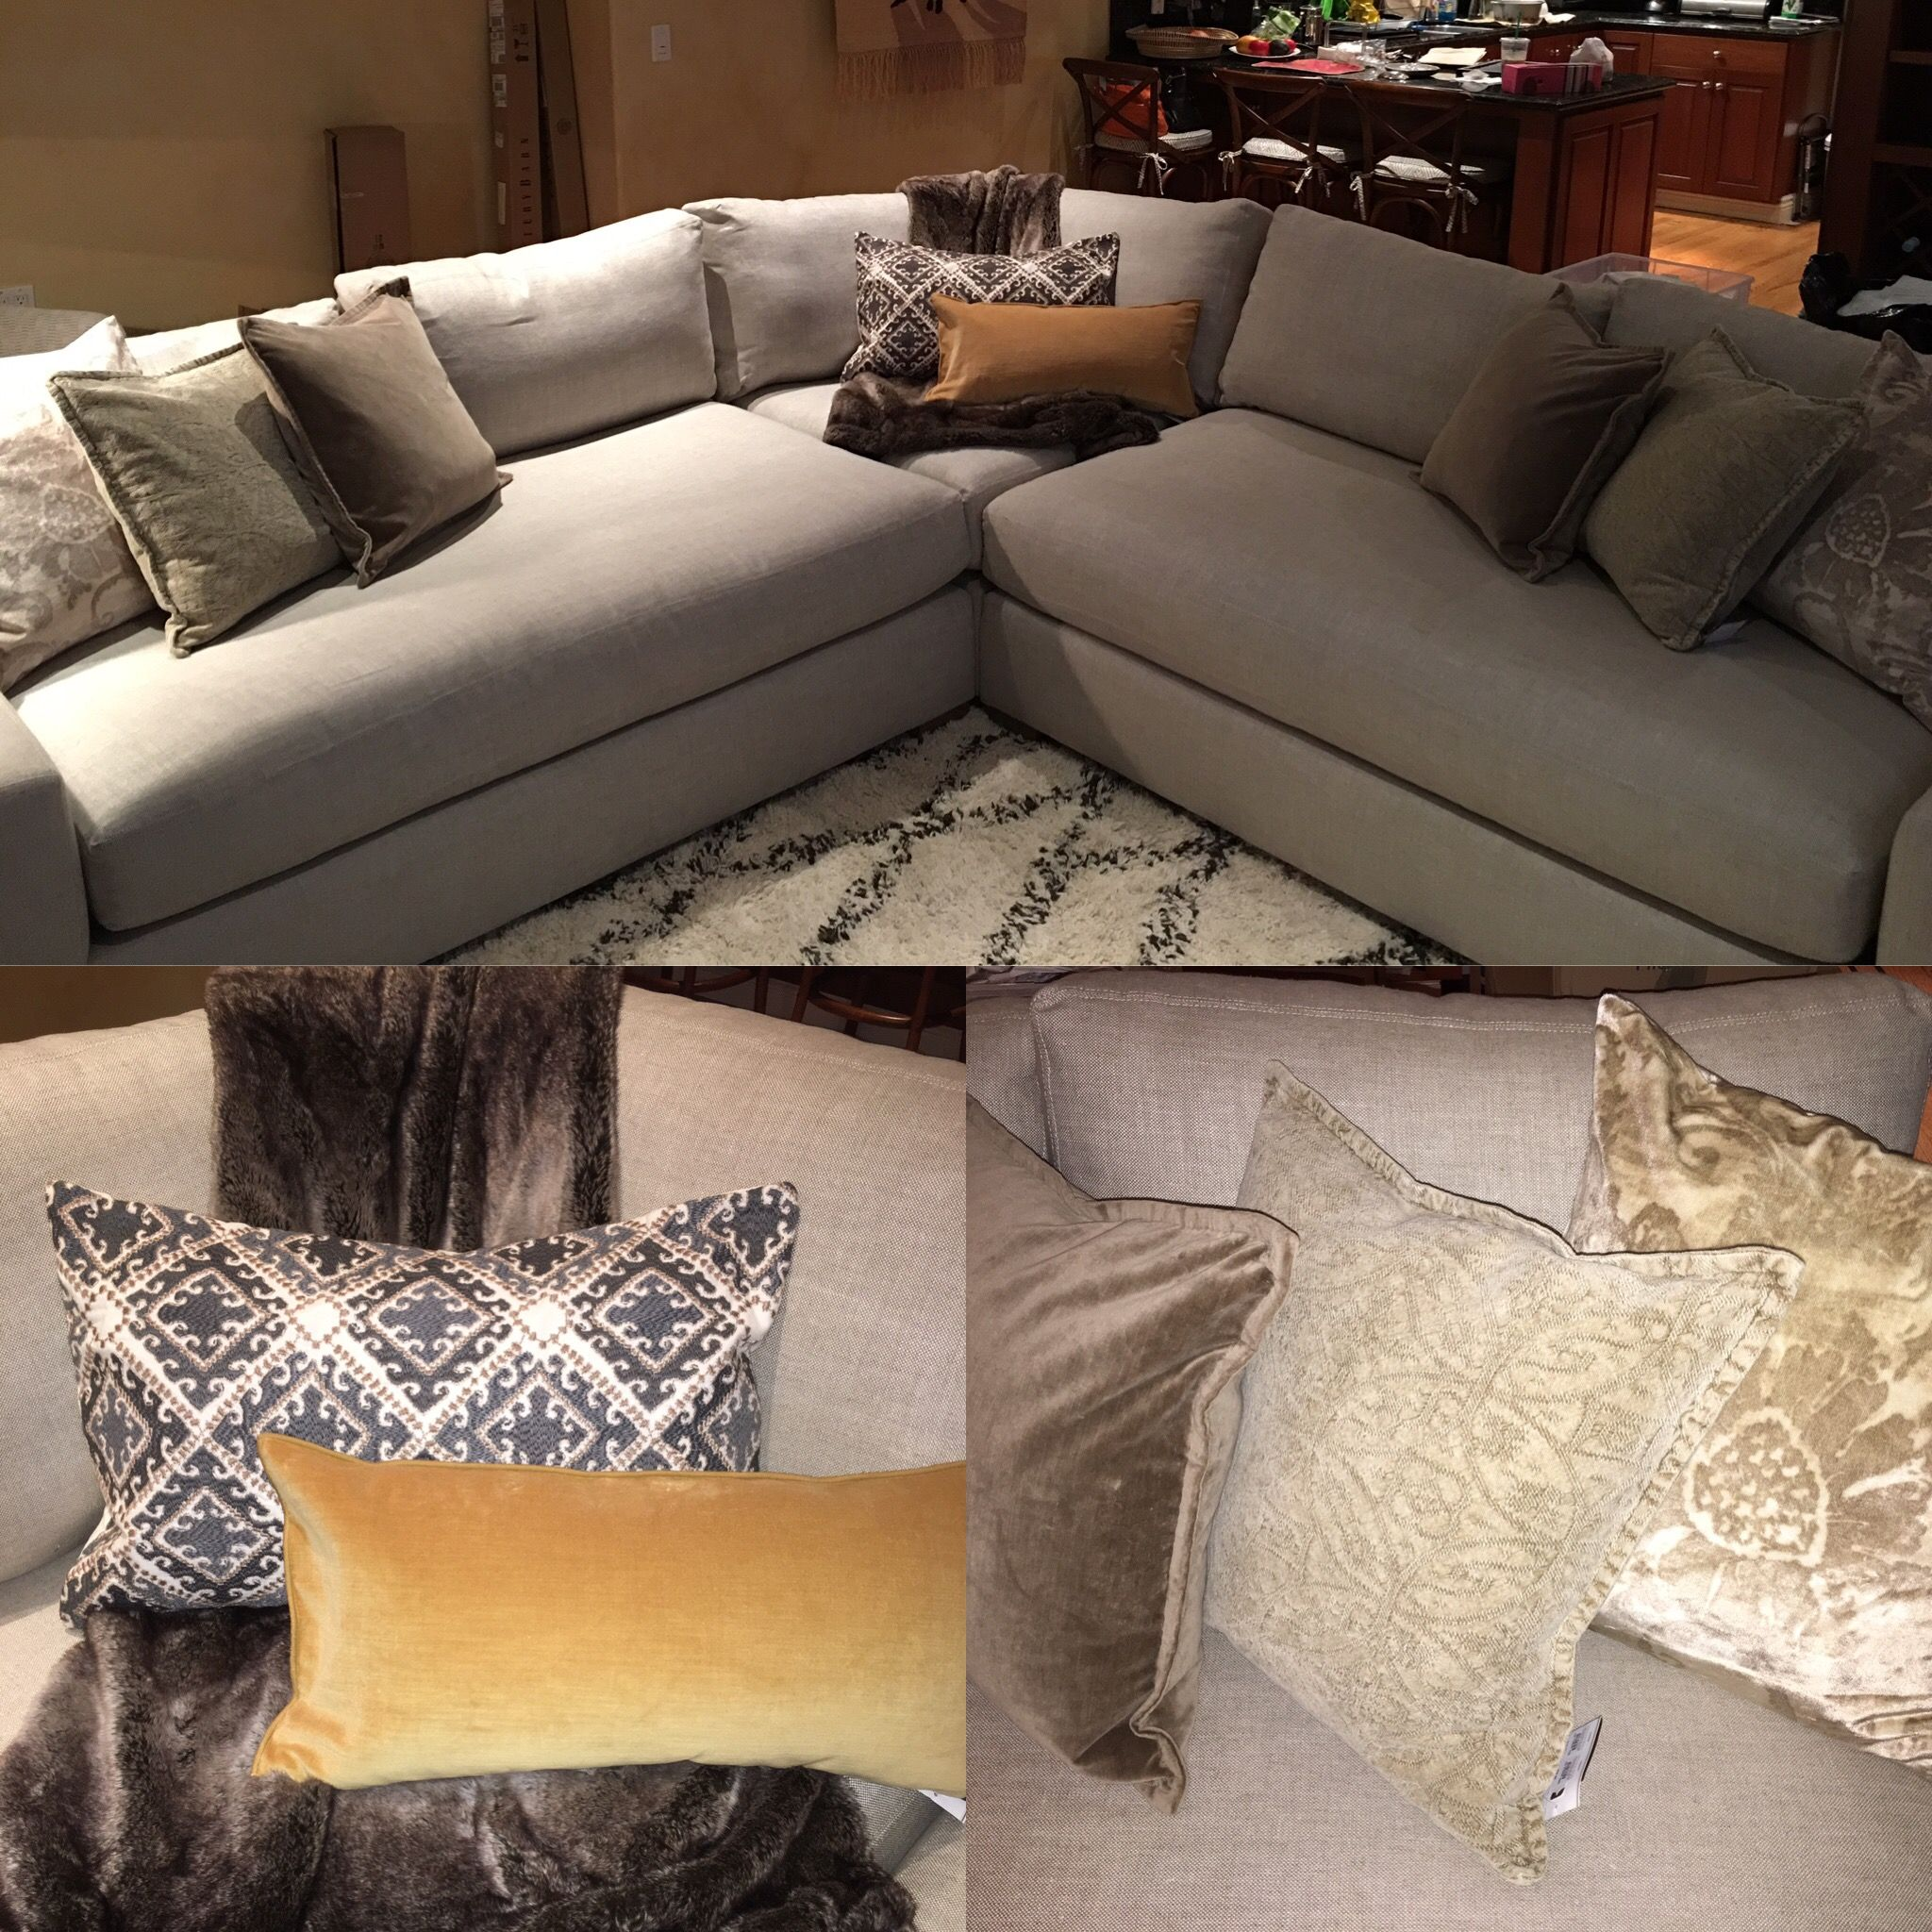 This Sofa Is All Dressed Up With Pillows From @Potterybarn